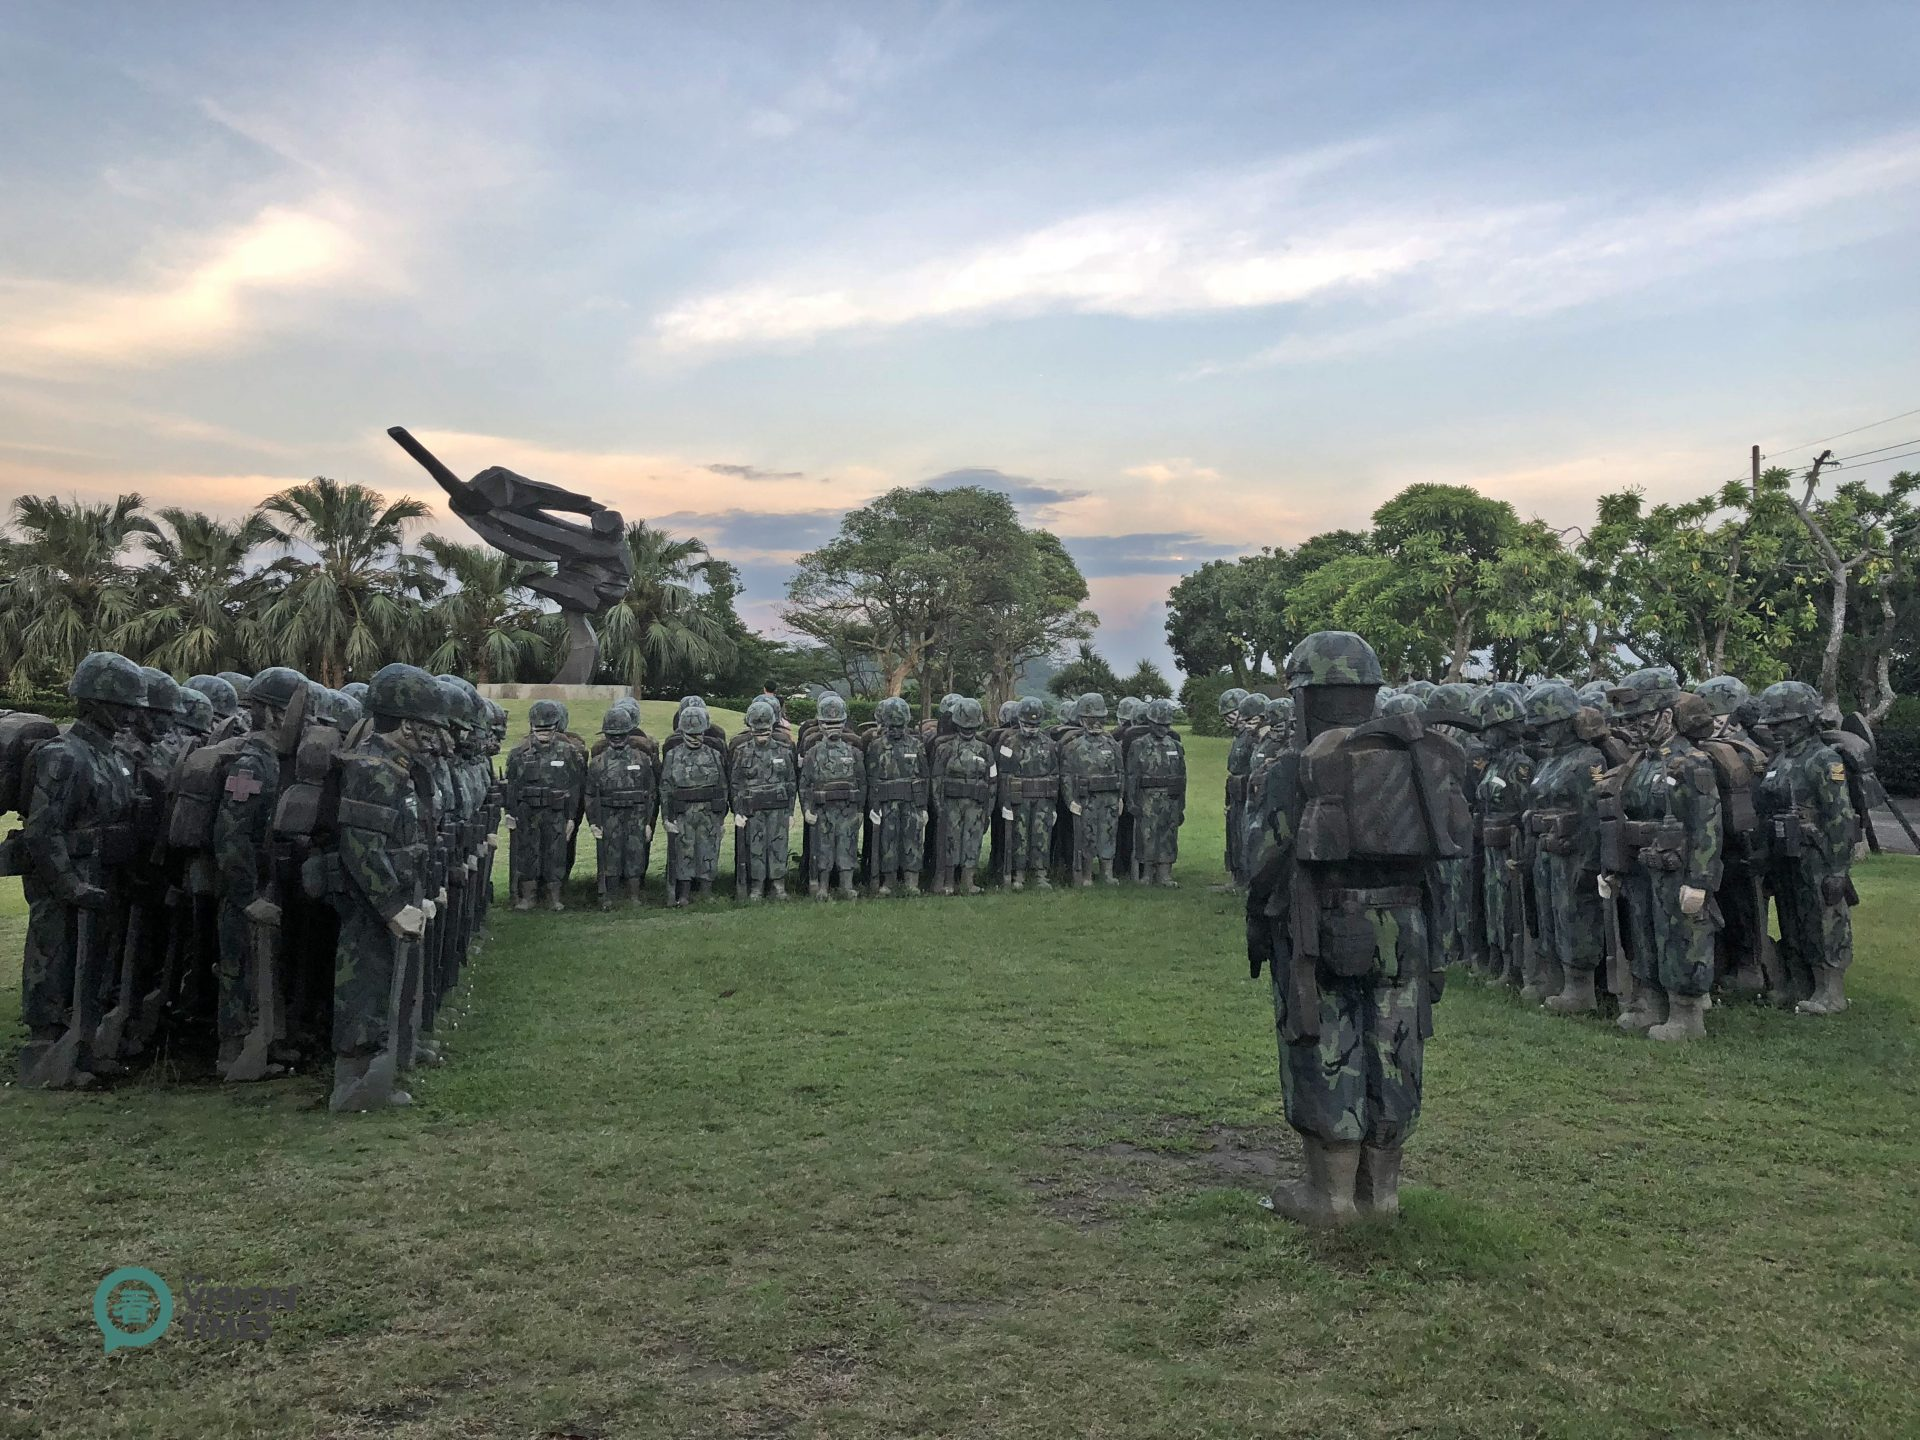 A striking sculpture form the Living World Series – Armed Forces. (Image: Billy Shyu / Vision Times)